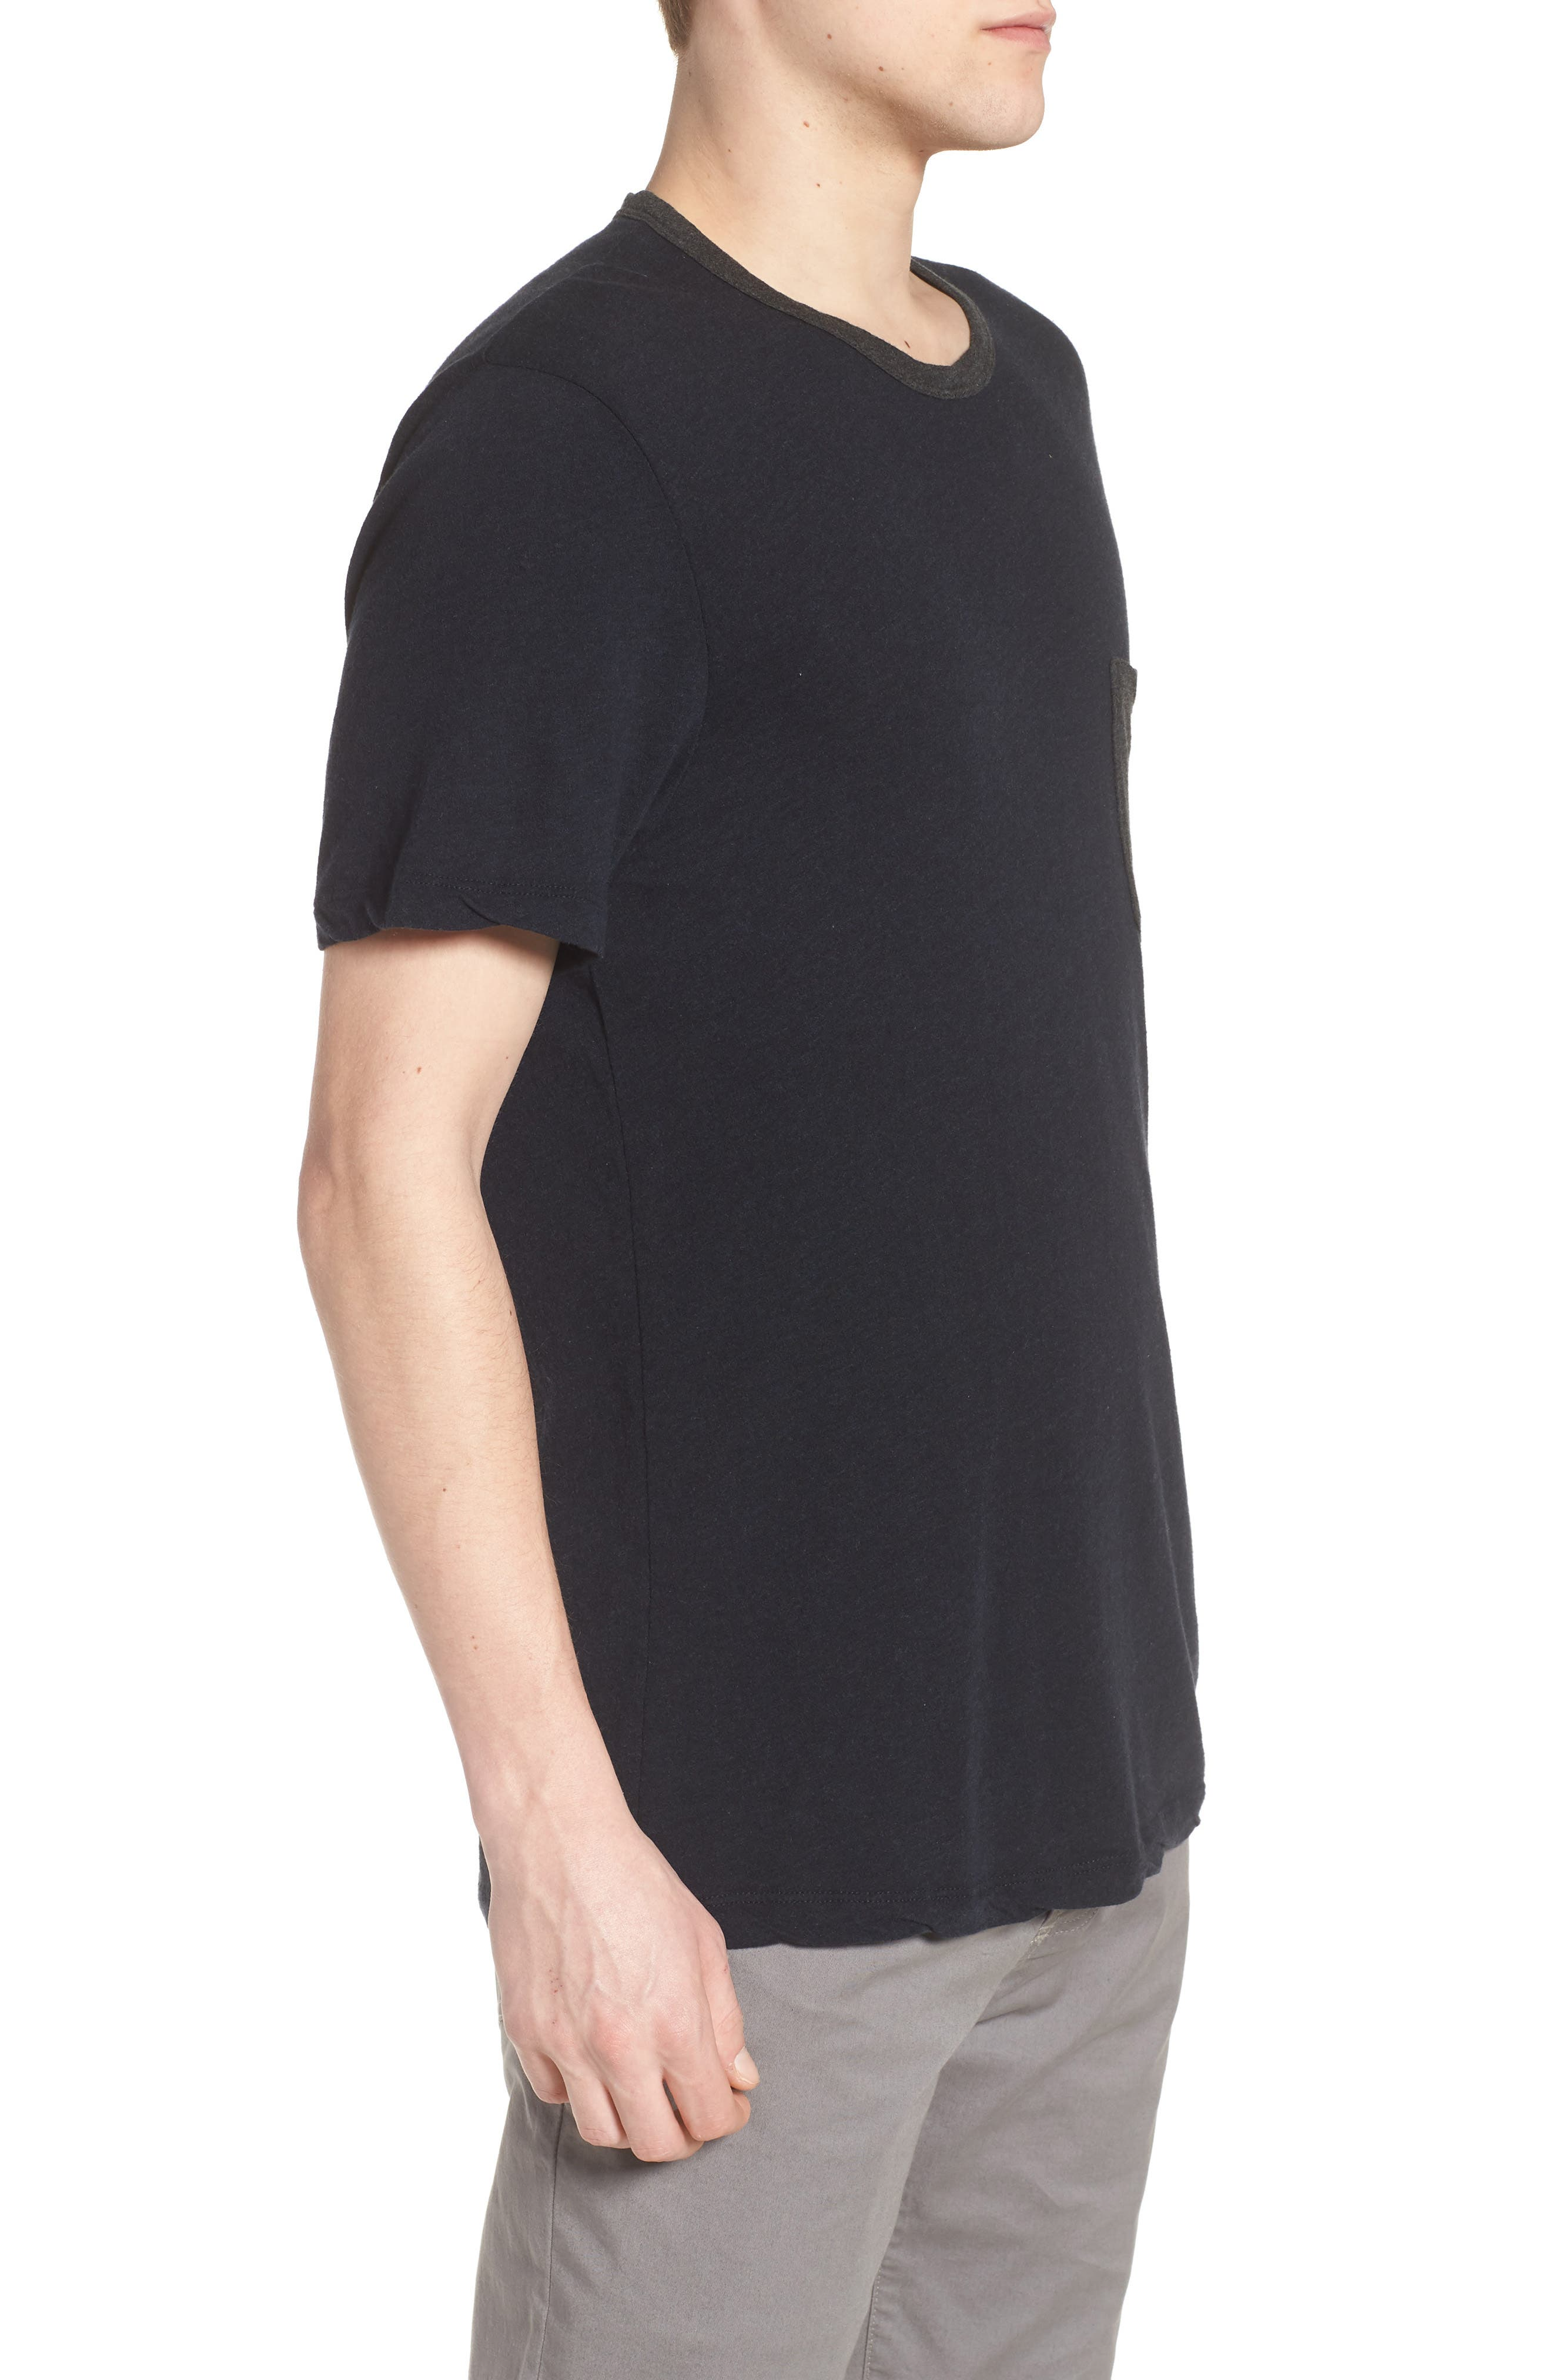 JAMES PERSE,                             Two-Tone Pocket T-Shirt,                             Alternate thumbnail 3, color,                             001